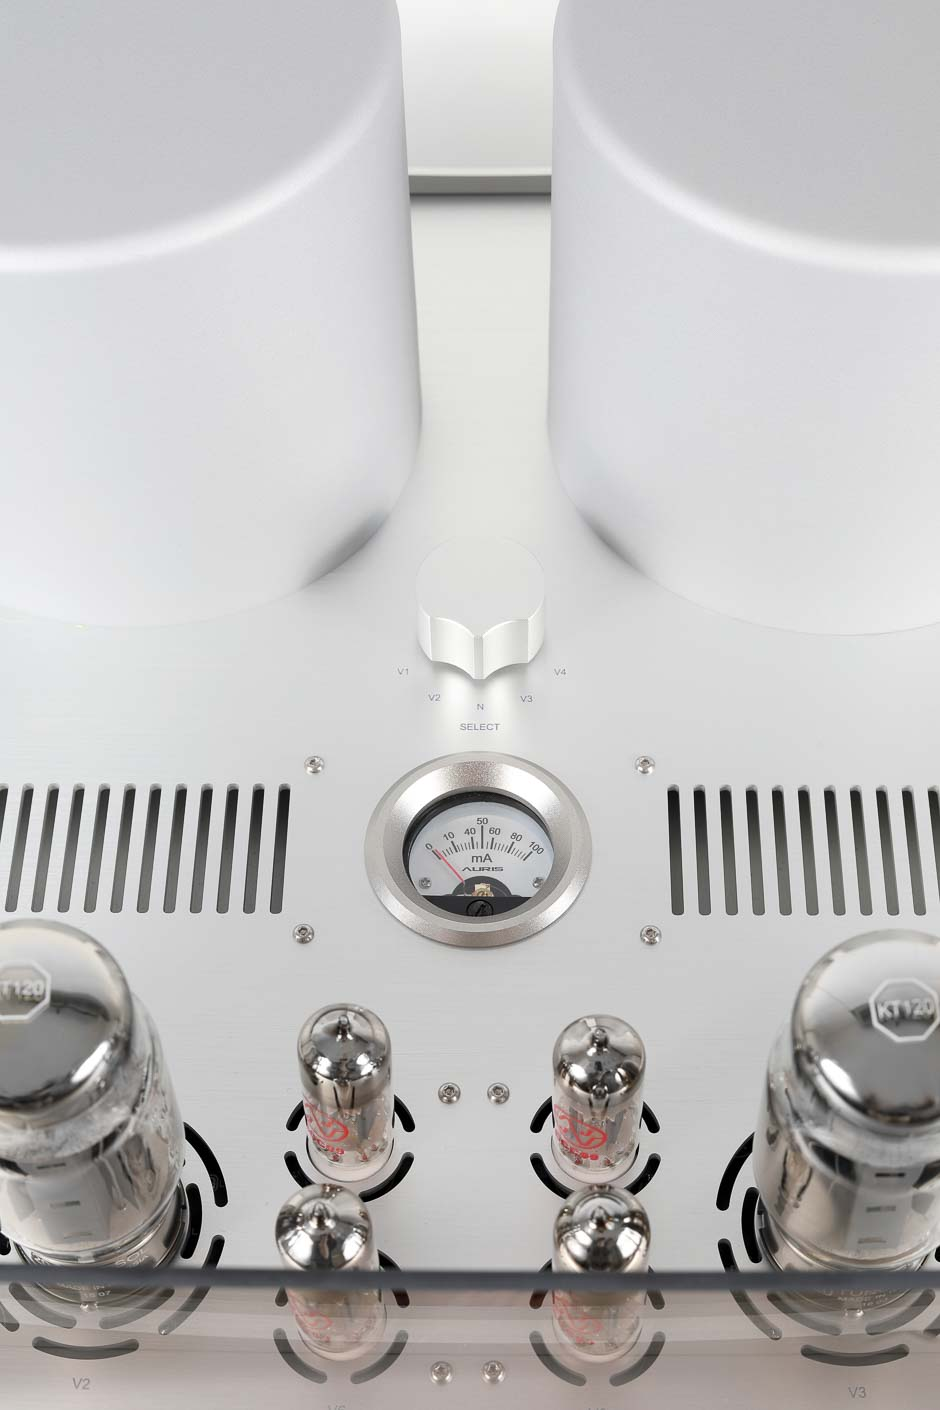 Auris Audio Fortissimo top plate